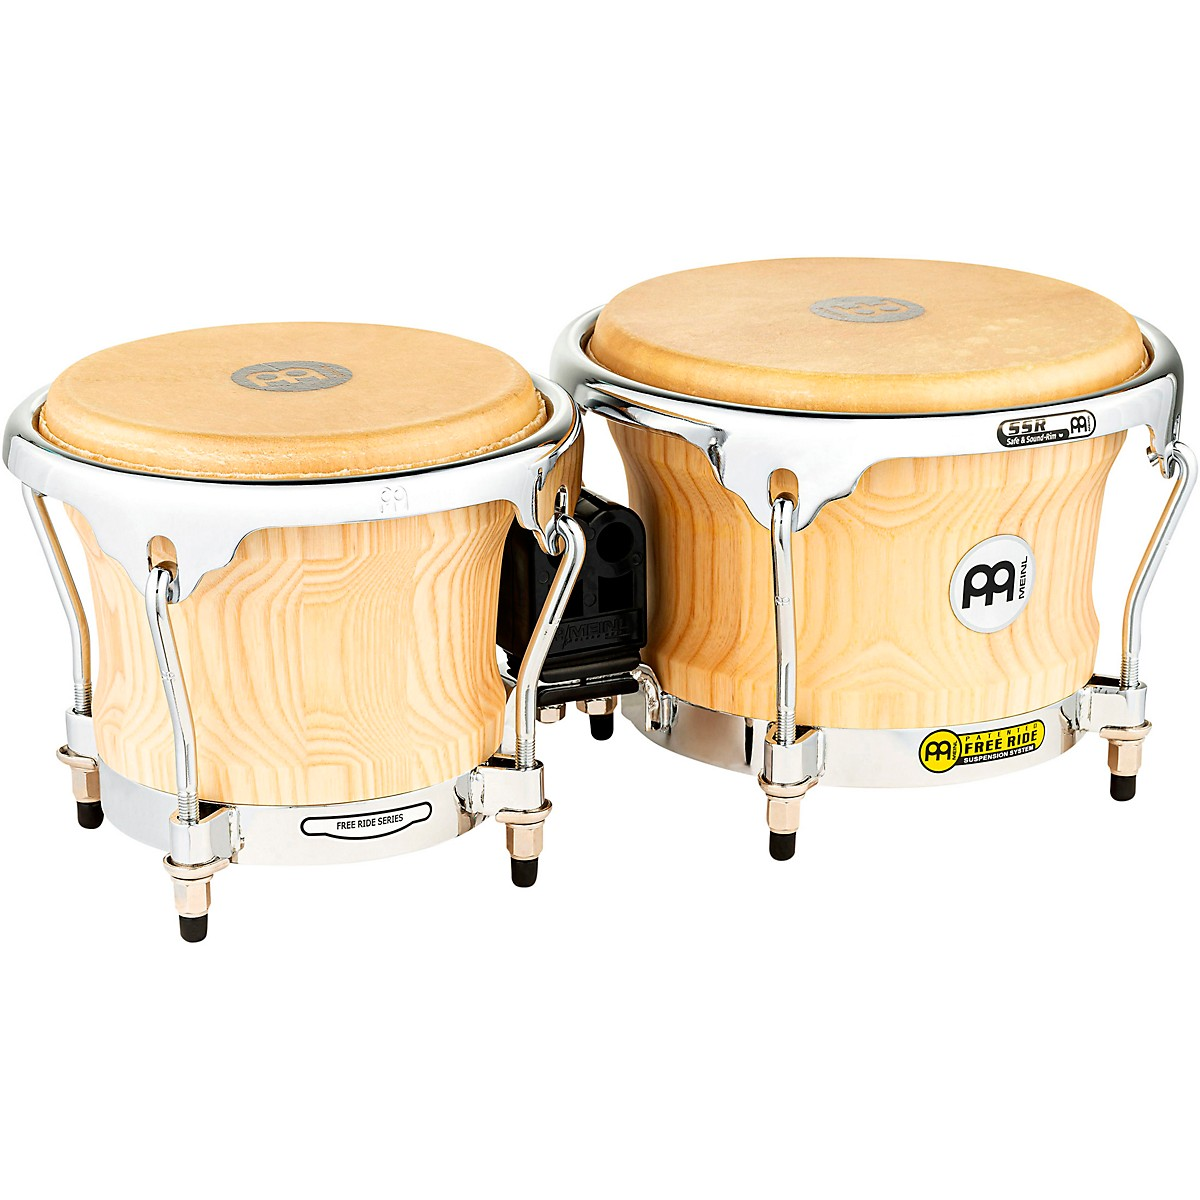 Meinl Free Ride Series Collection Wood Bongos